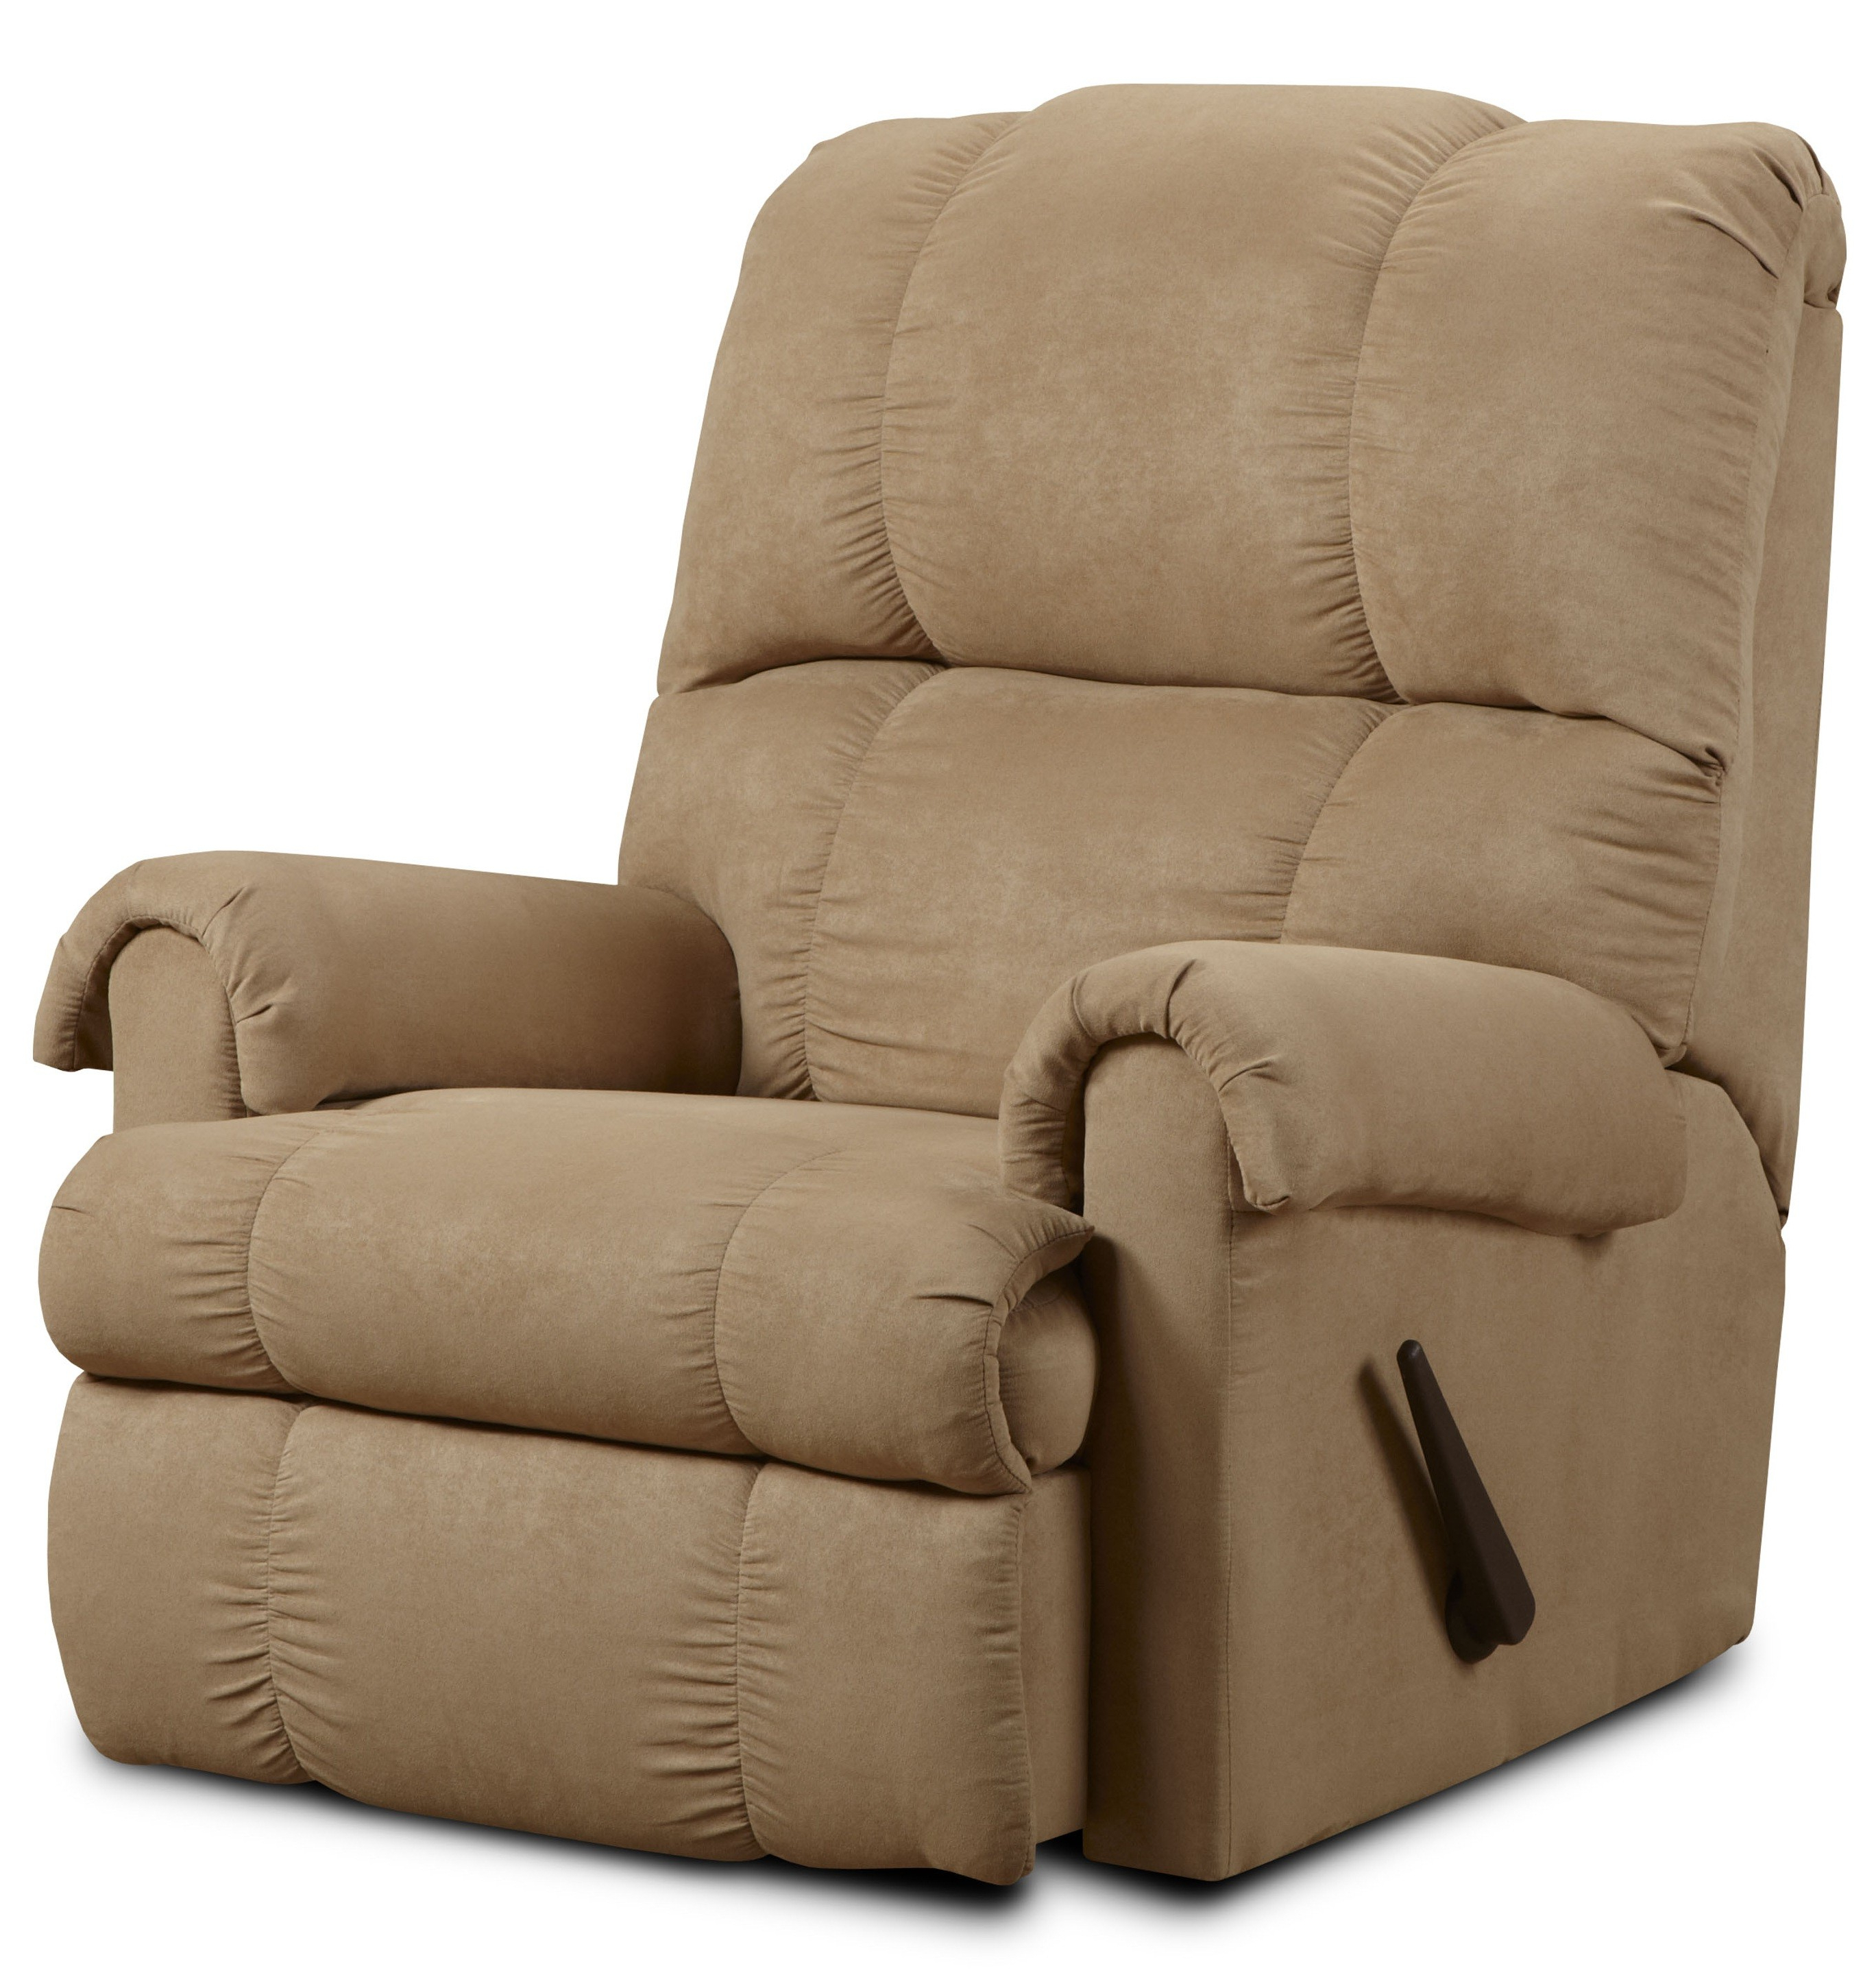 Preferred Rogan Leather Cafe Latte Swivel Glider Recliners Intended For Furniture: Surprising Simmons Recliners For Contemporary Living Room (View 5 of 20)